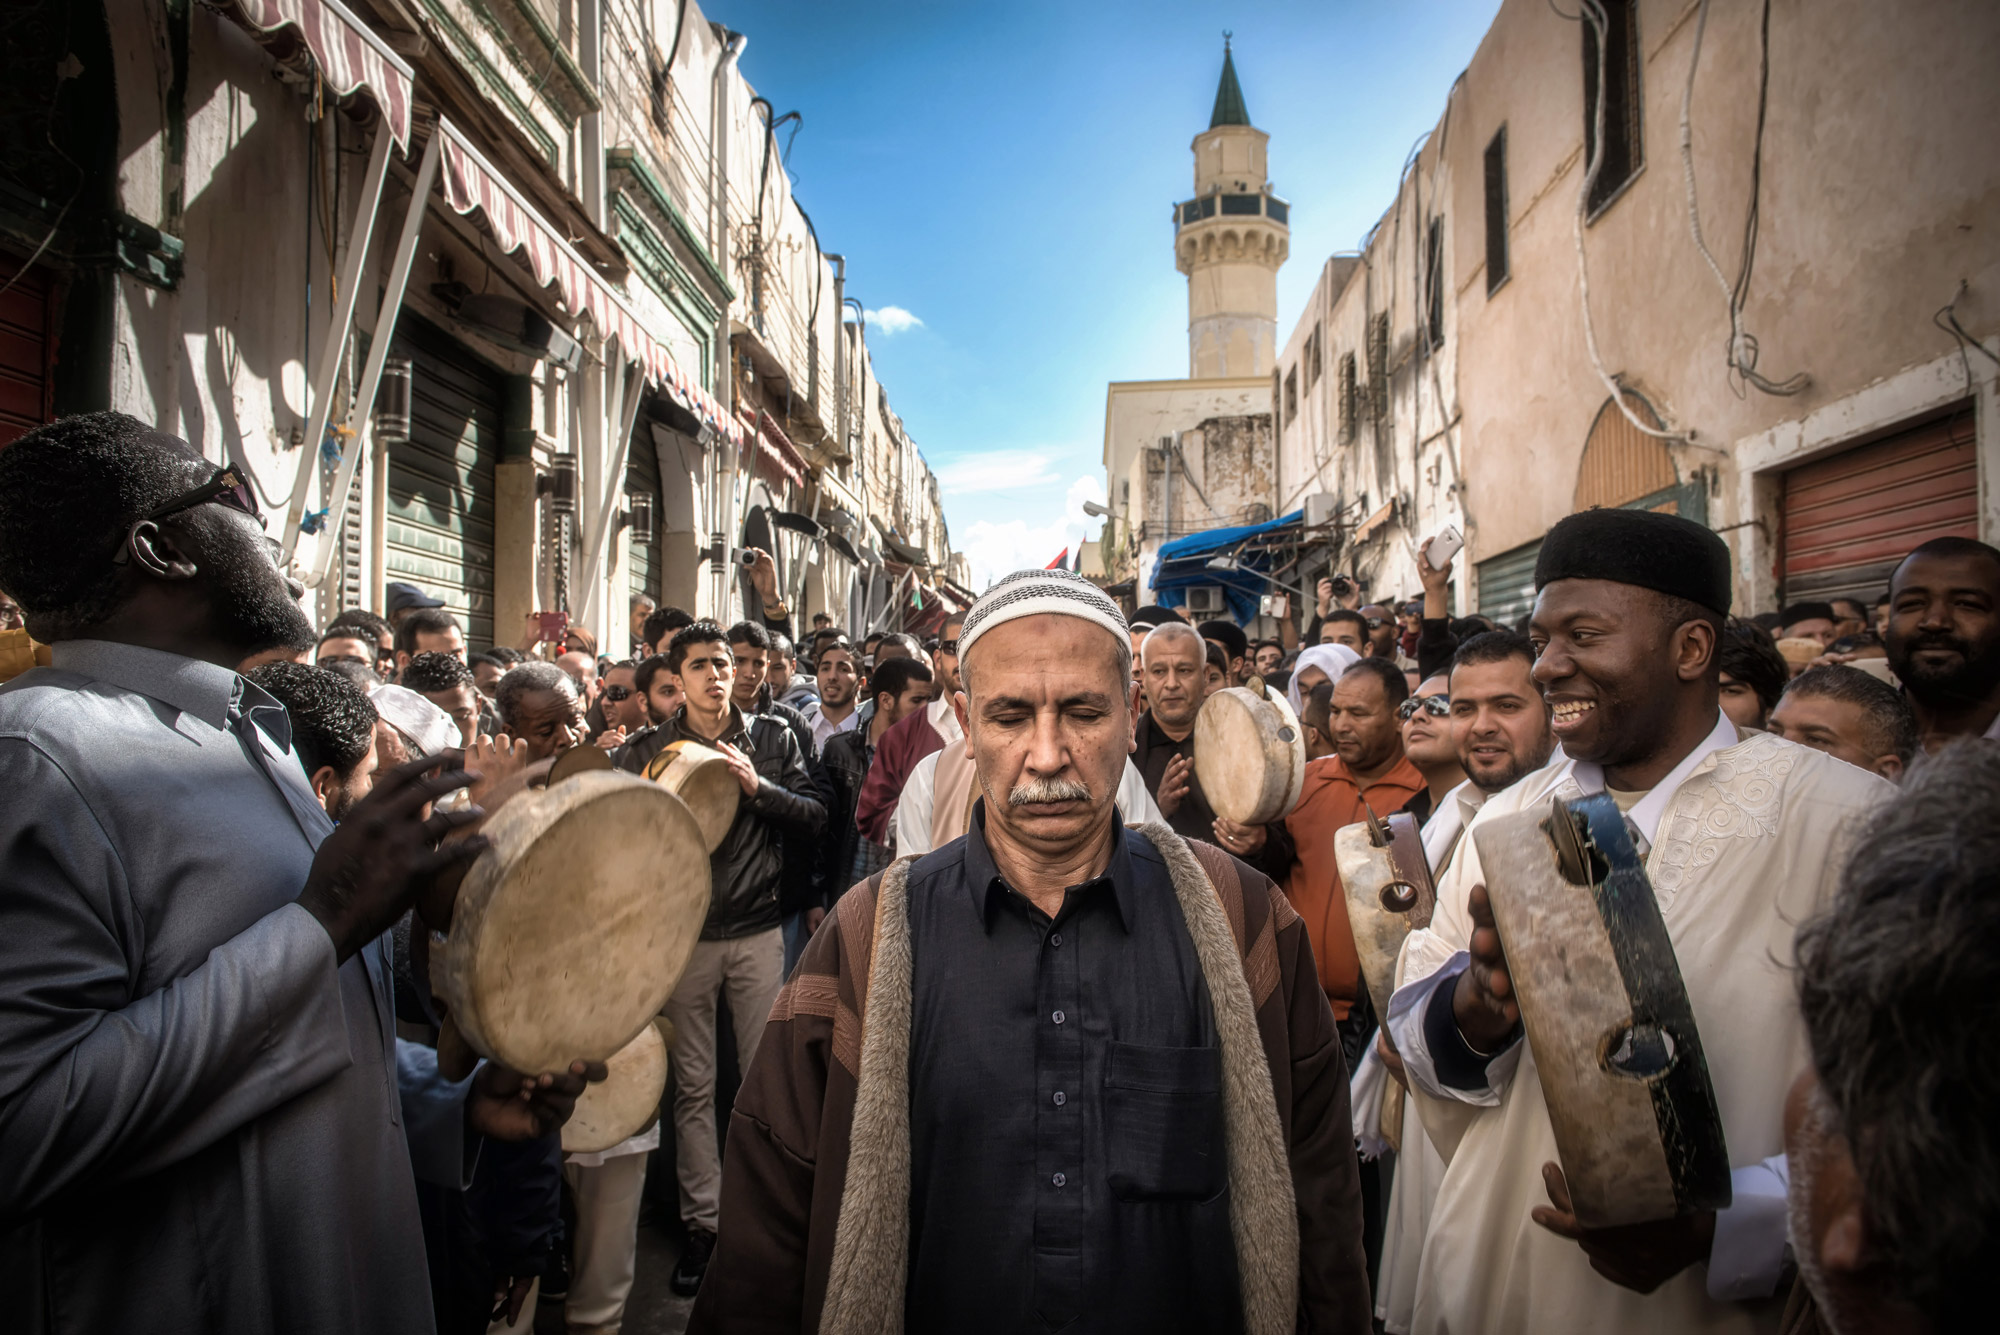 In Libya, Sufism was prominent during the Ottoman and Italian colonial era.